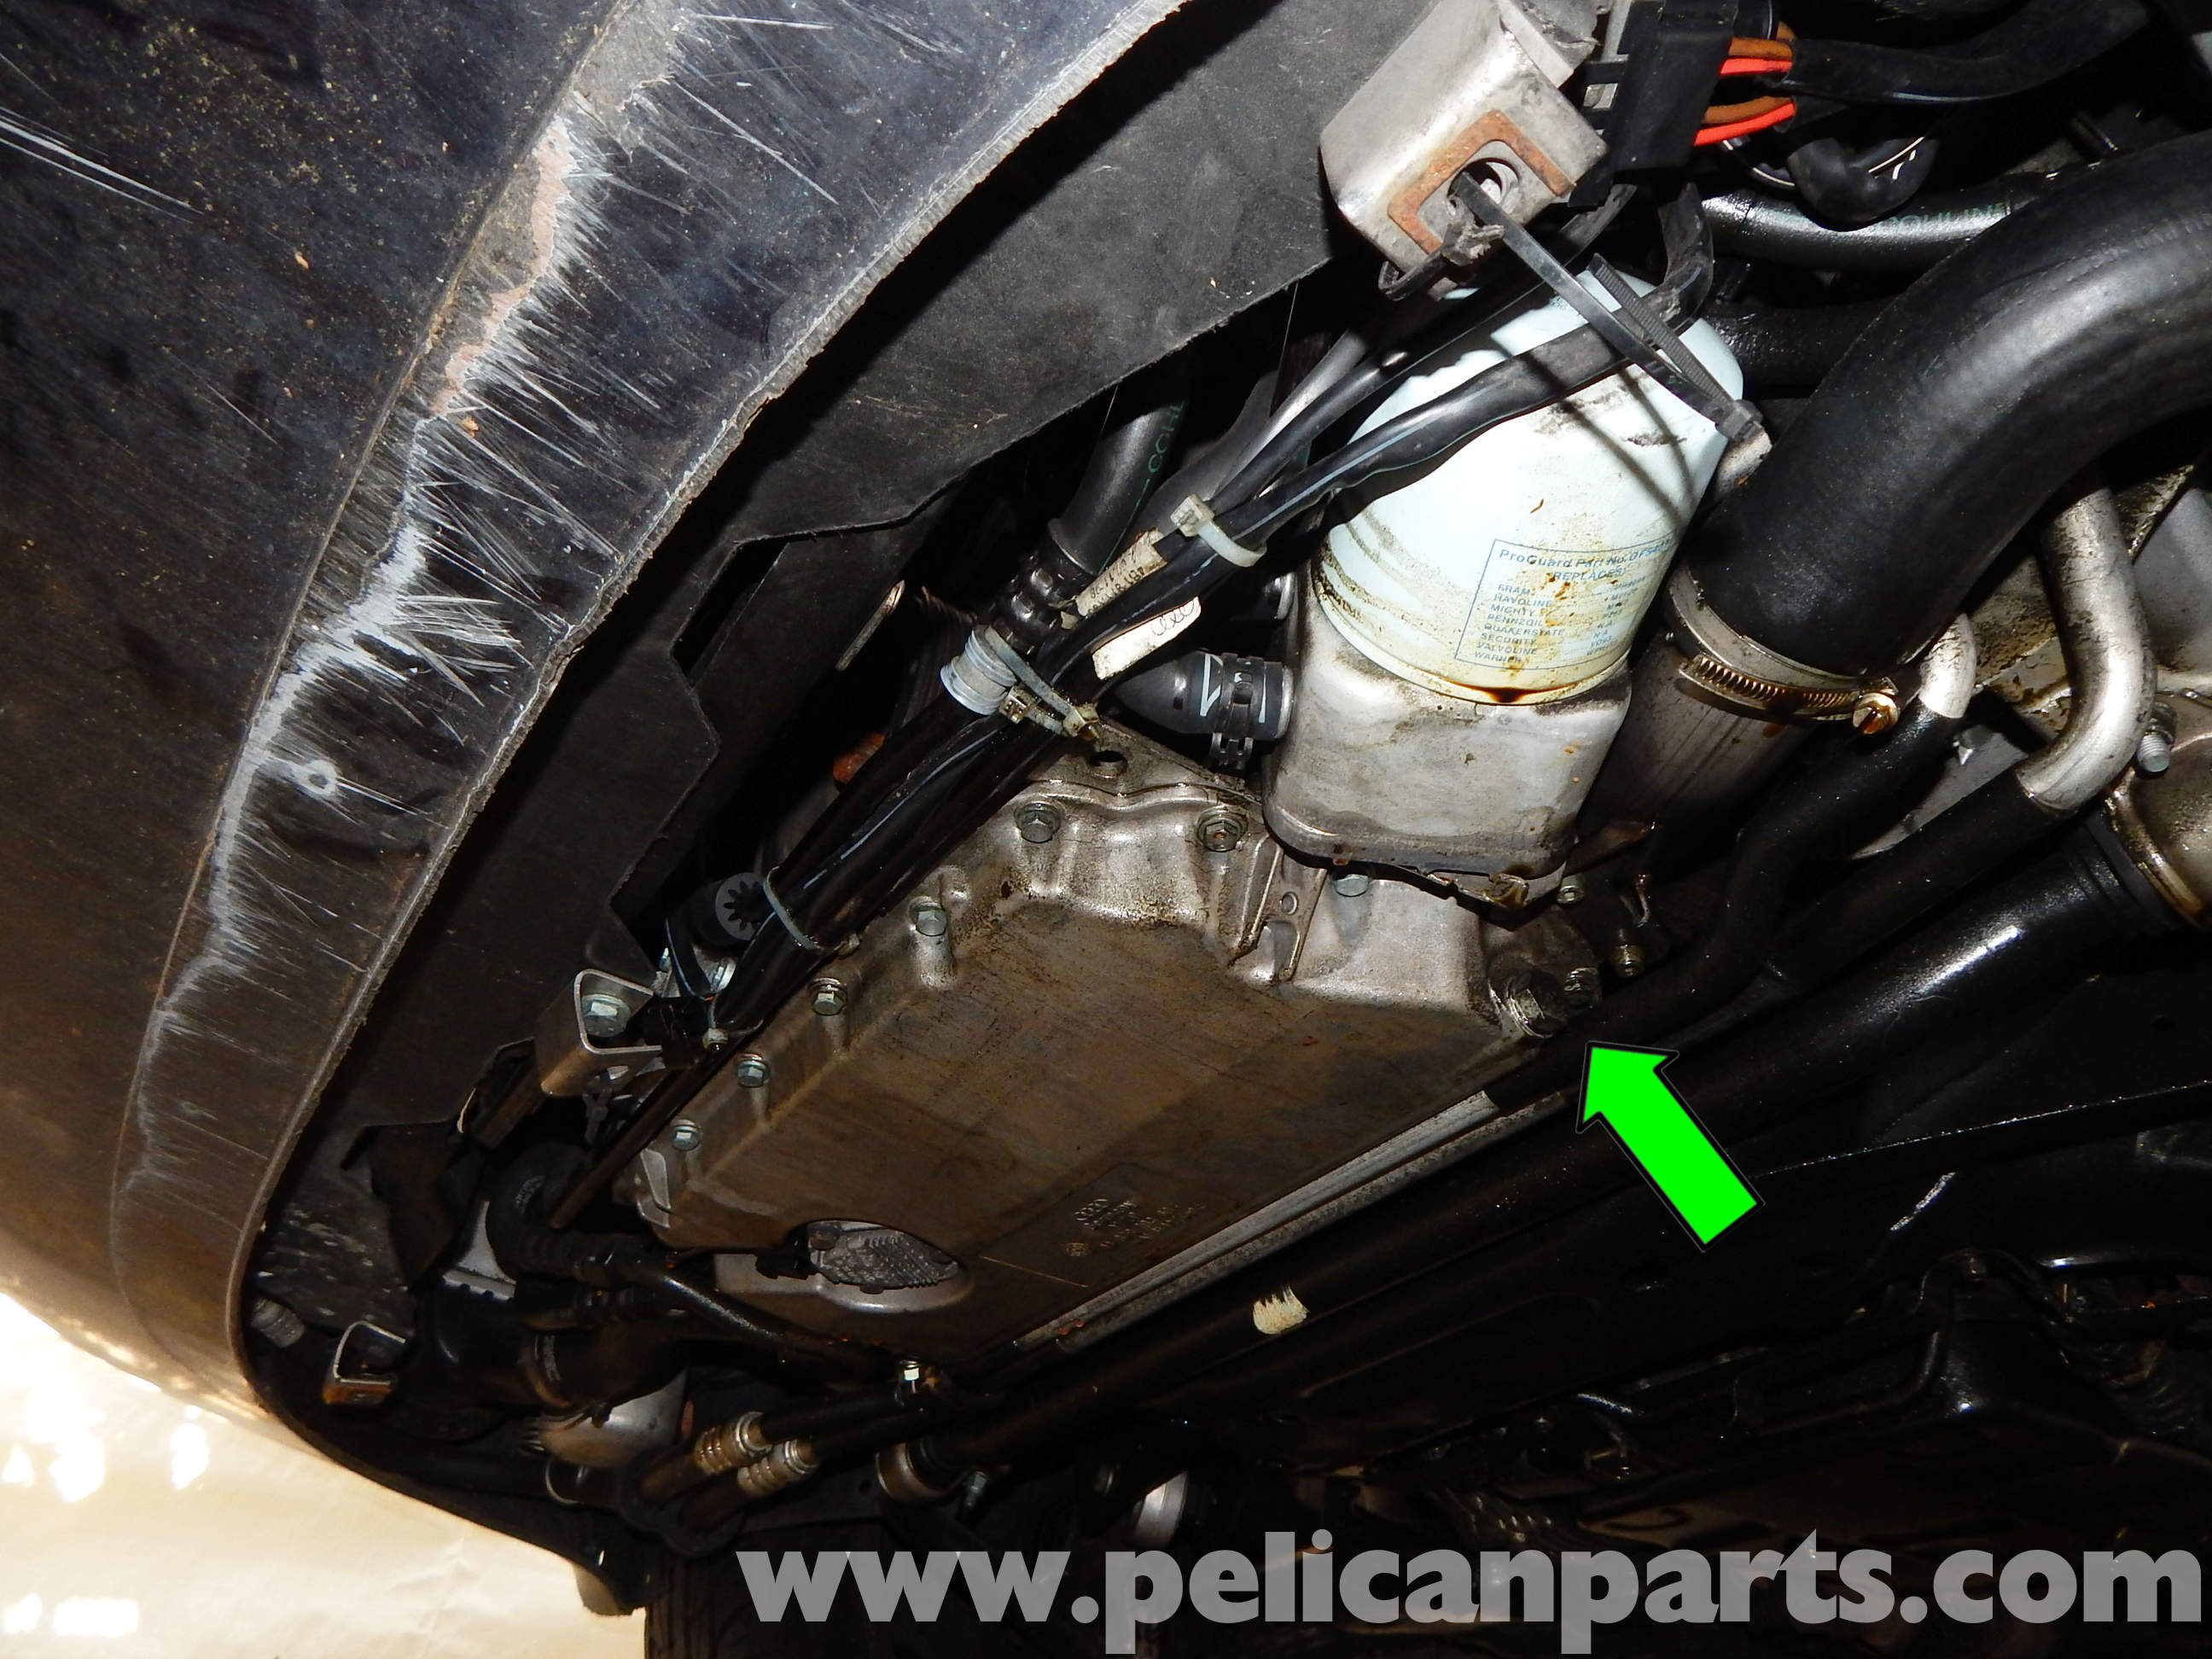 Pelican technical article audi a6 c5 engine oil change for Audi a6 motor oil